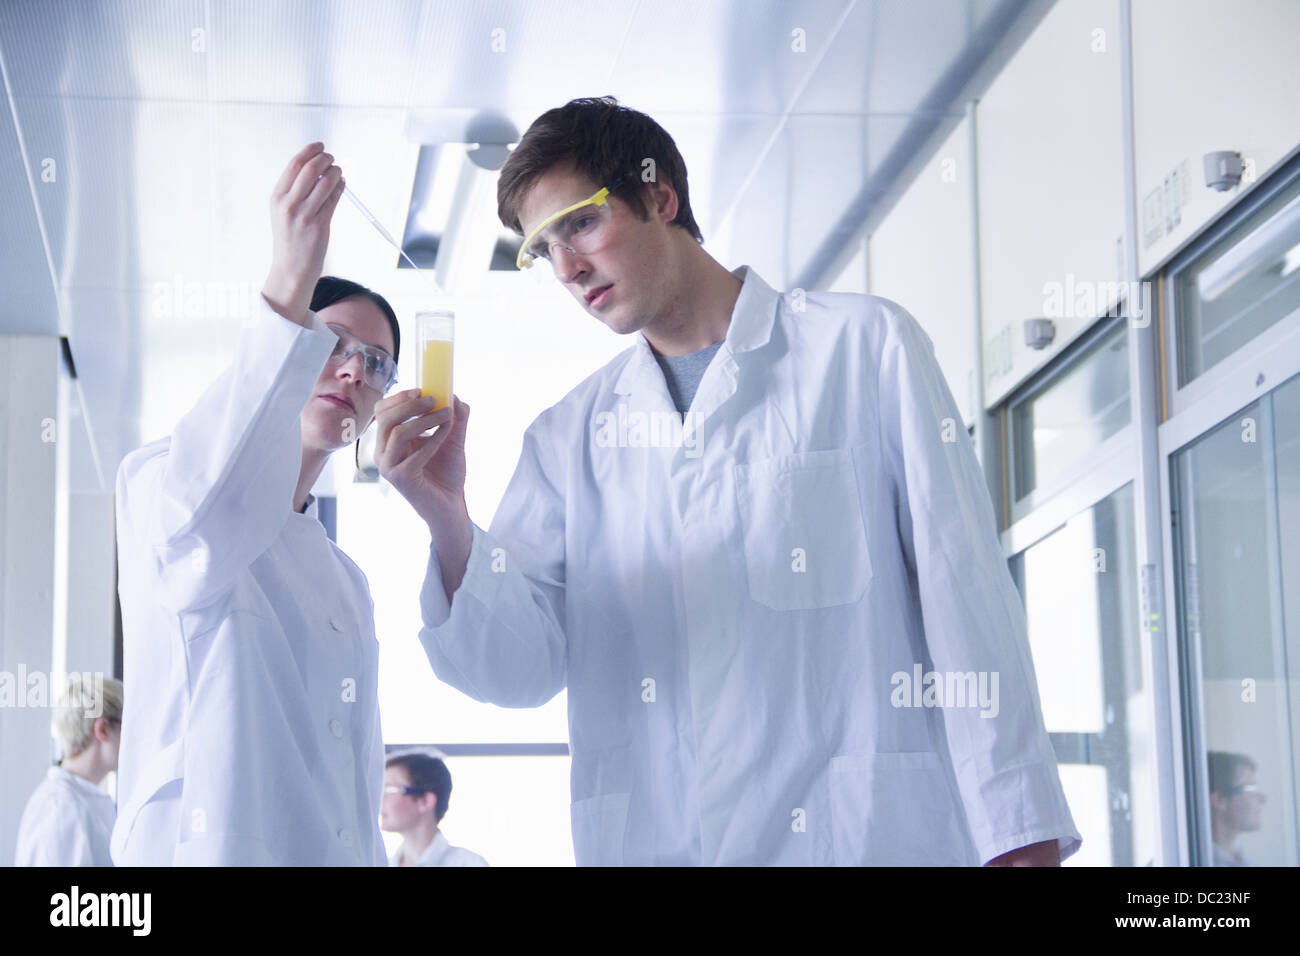 Chemistry students mixing chemicals in laboratory - Stock Image